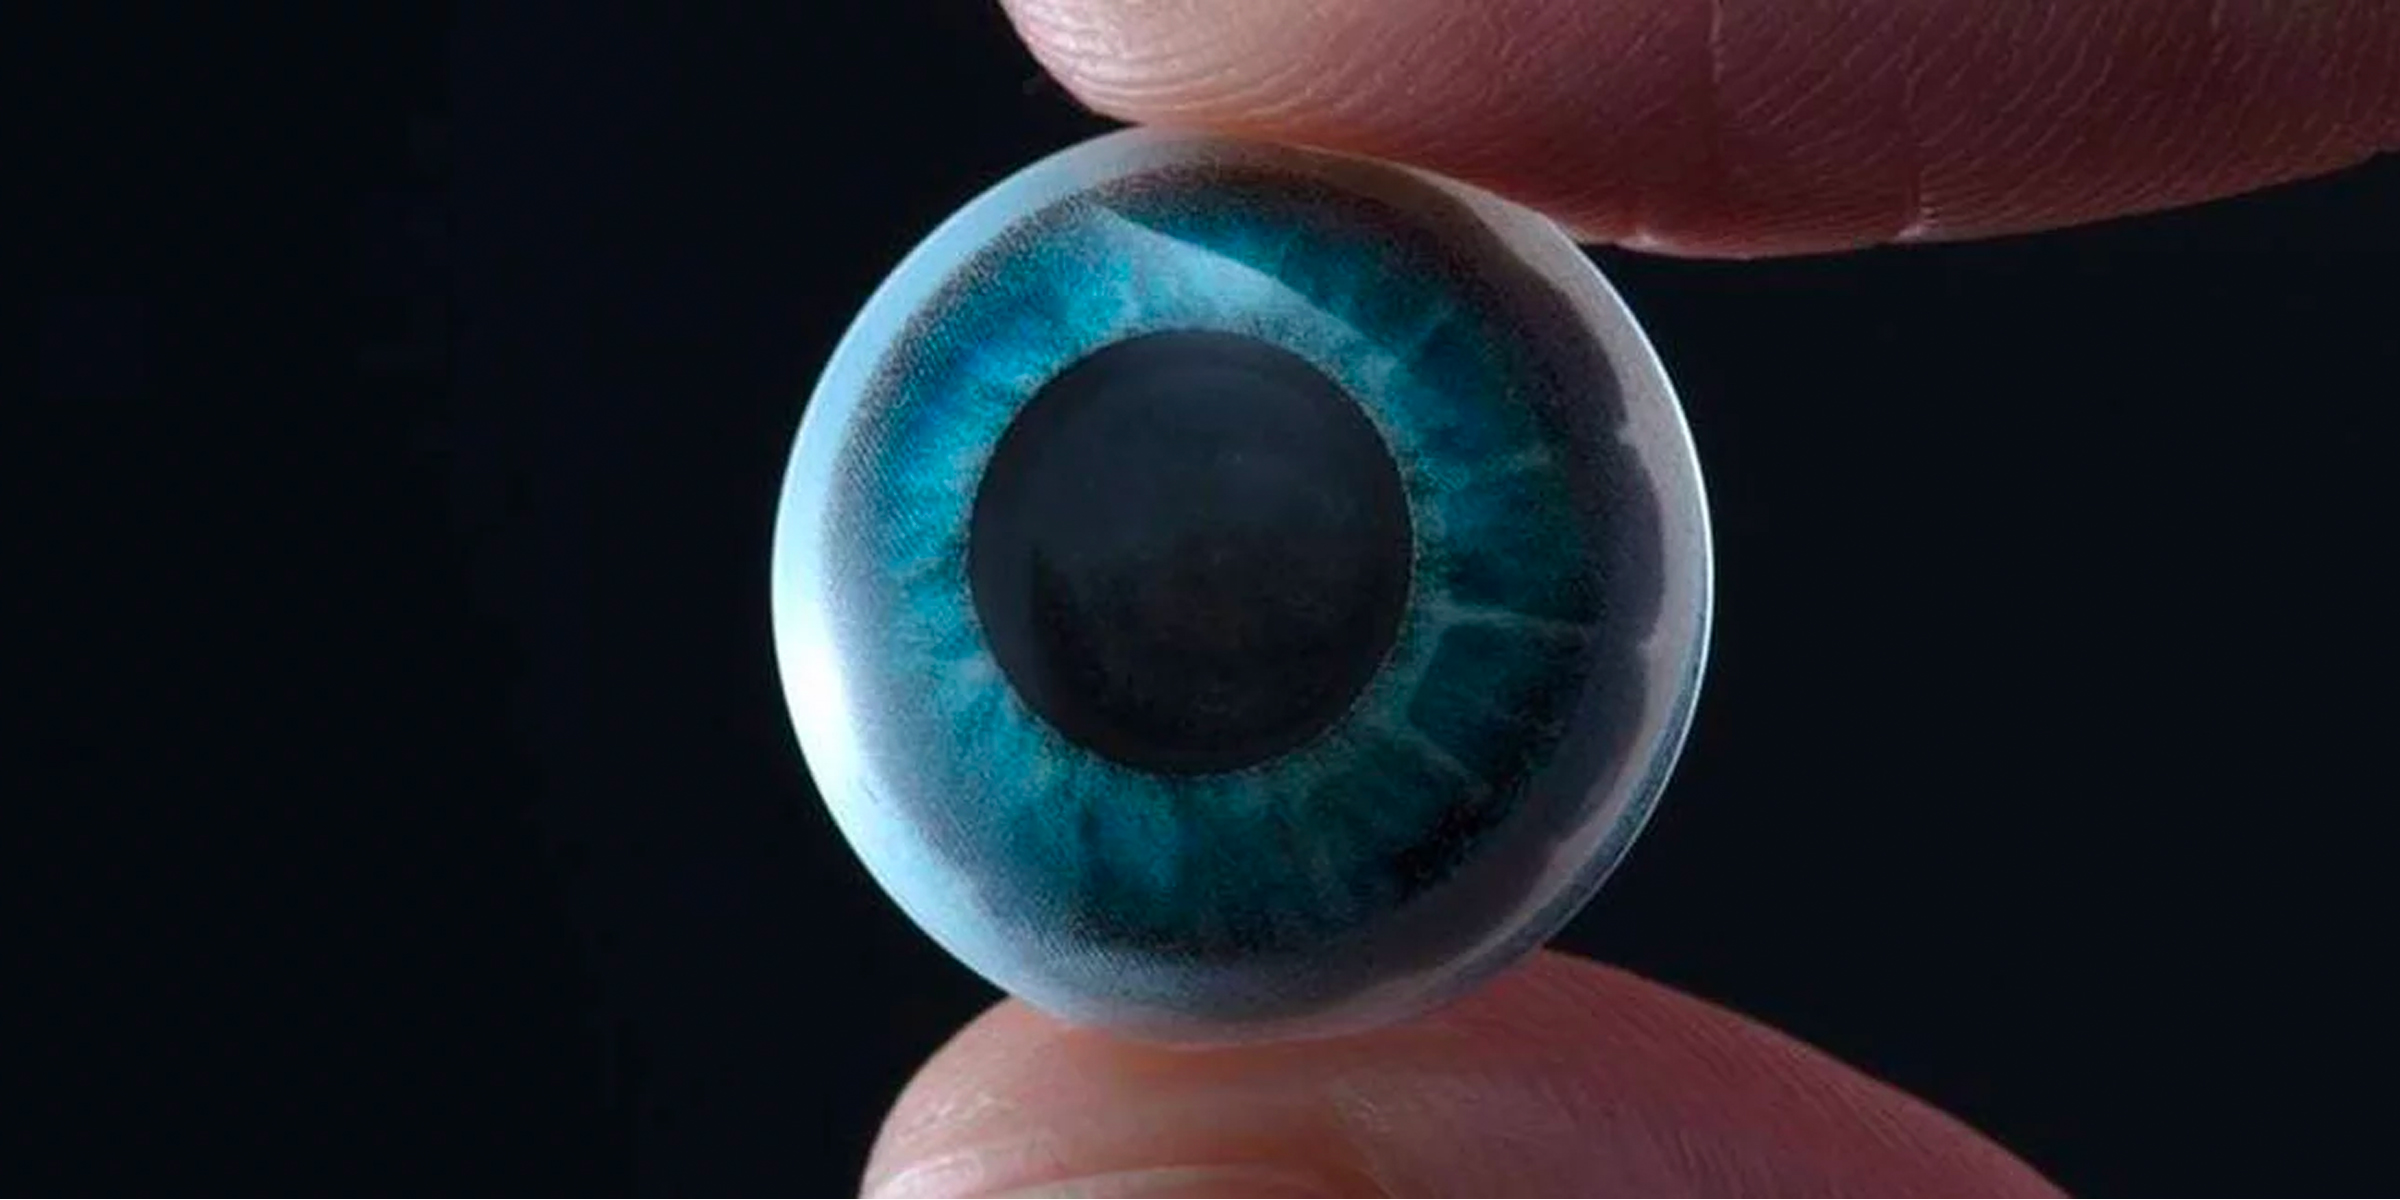 AR contact lenses with micro-displays